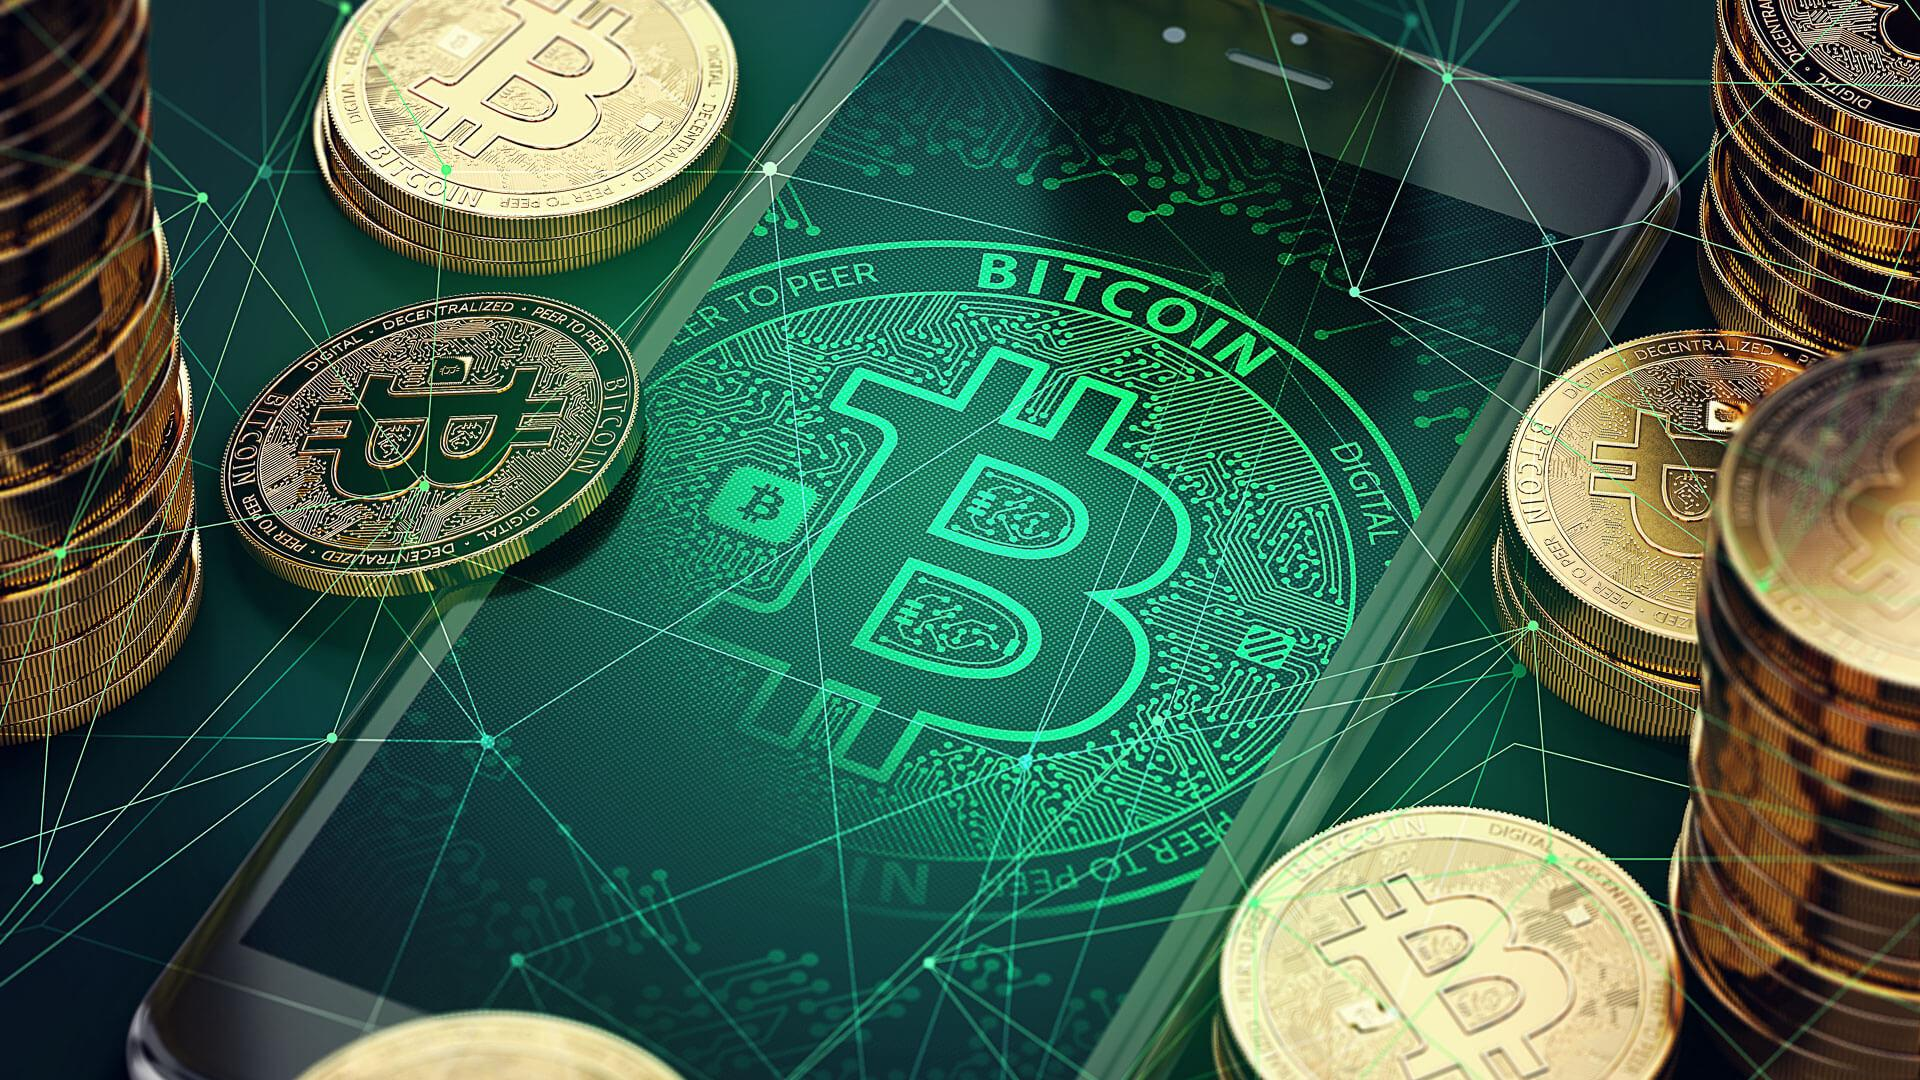 Is Bitcoin's Infrastructure Capable of Assisting Science?